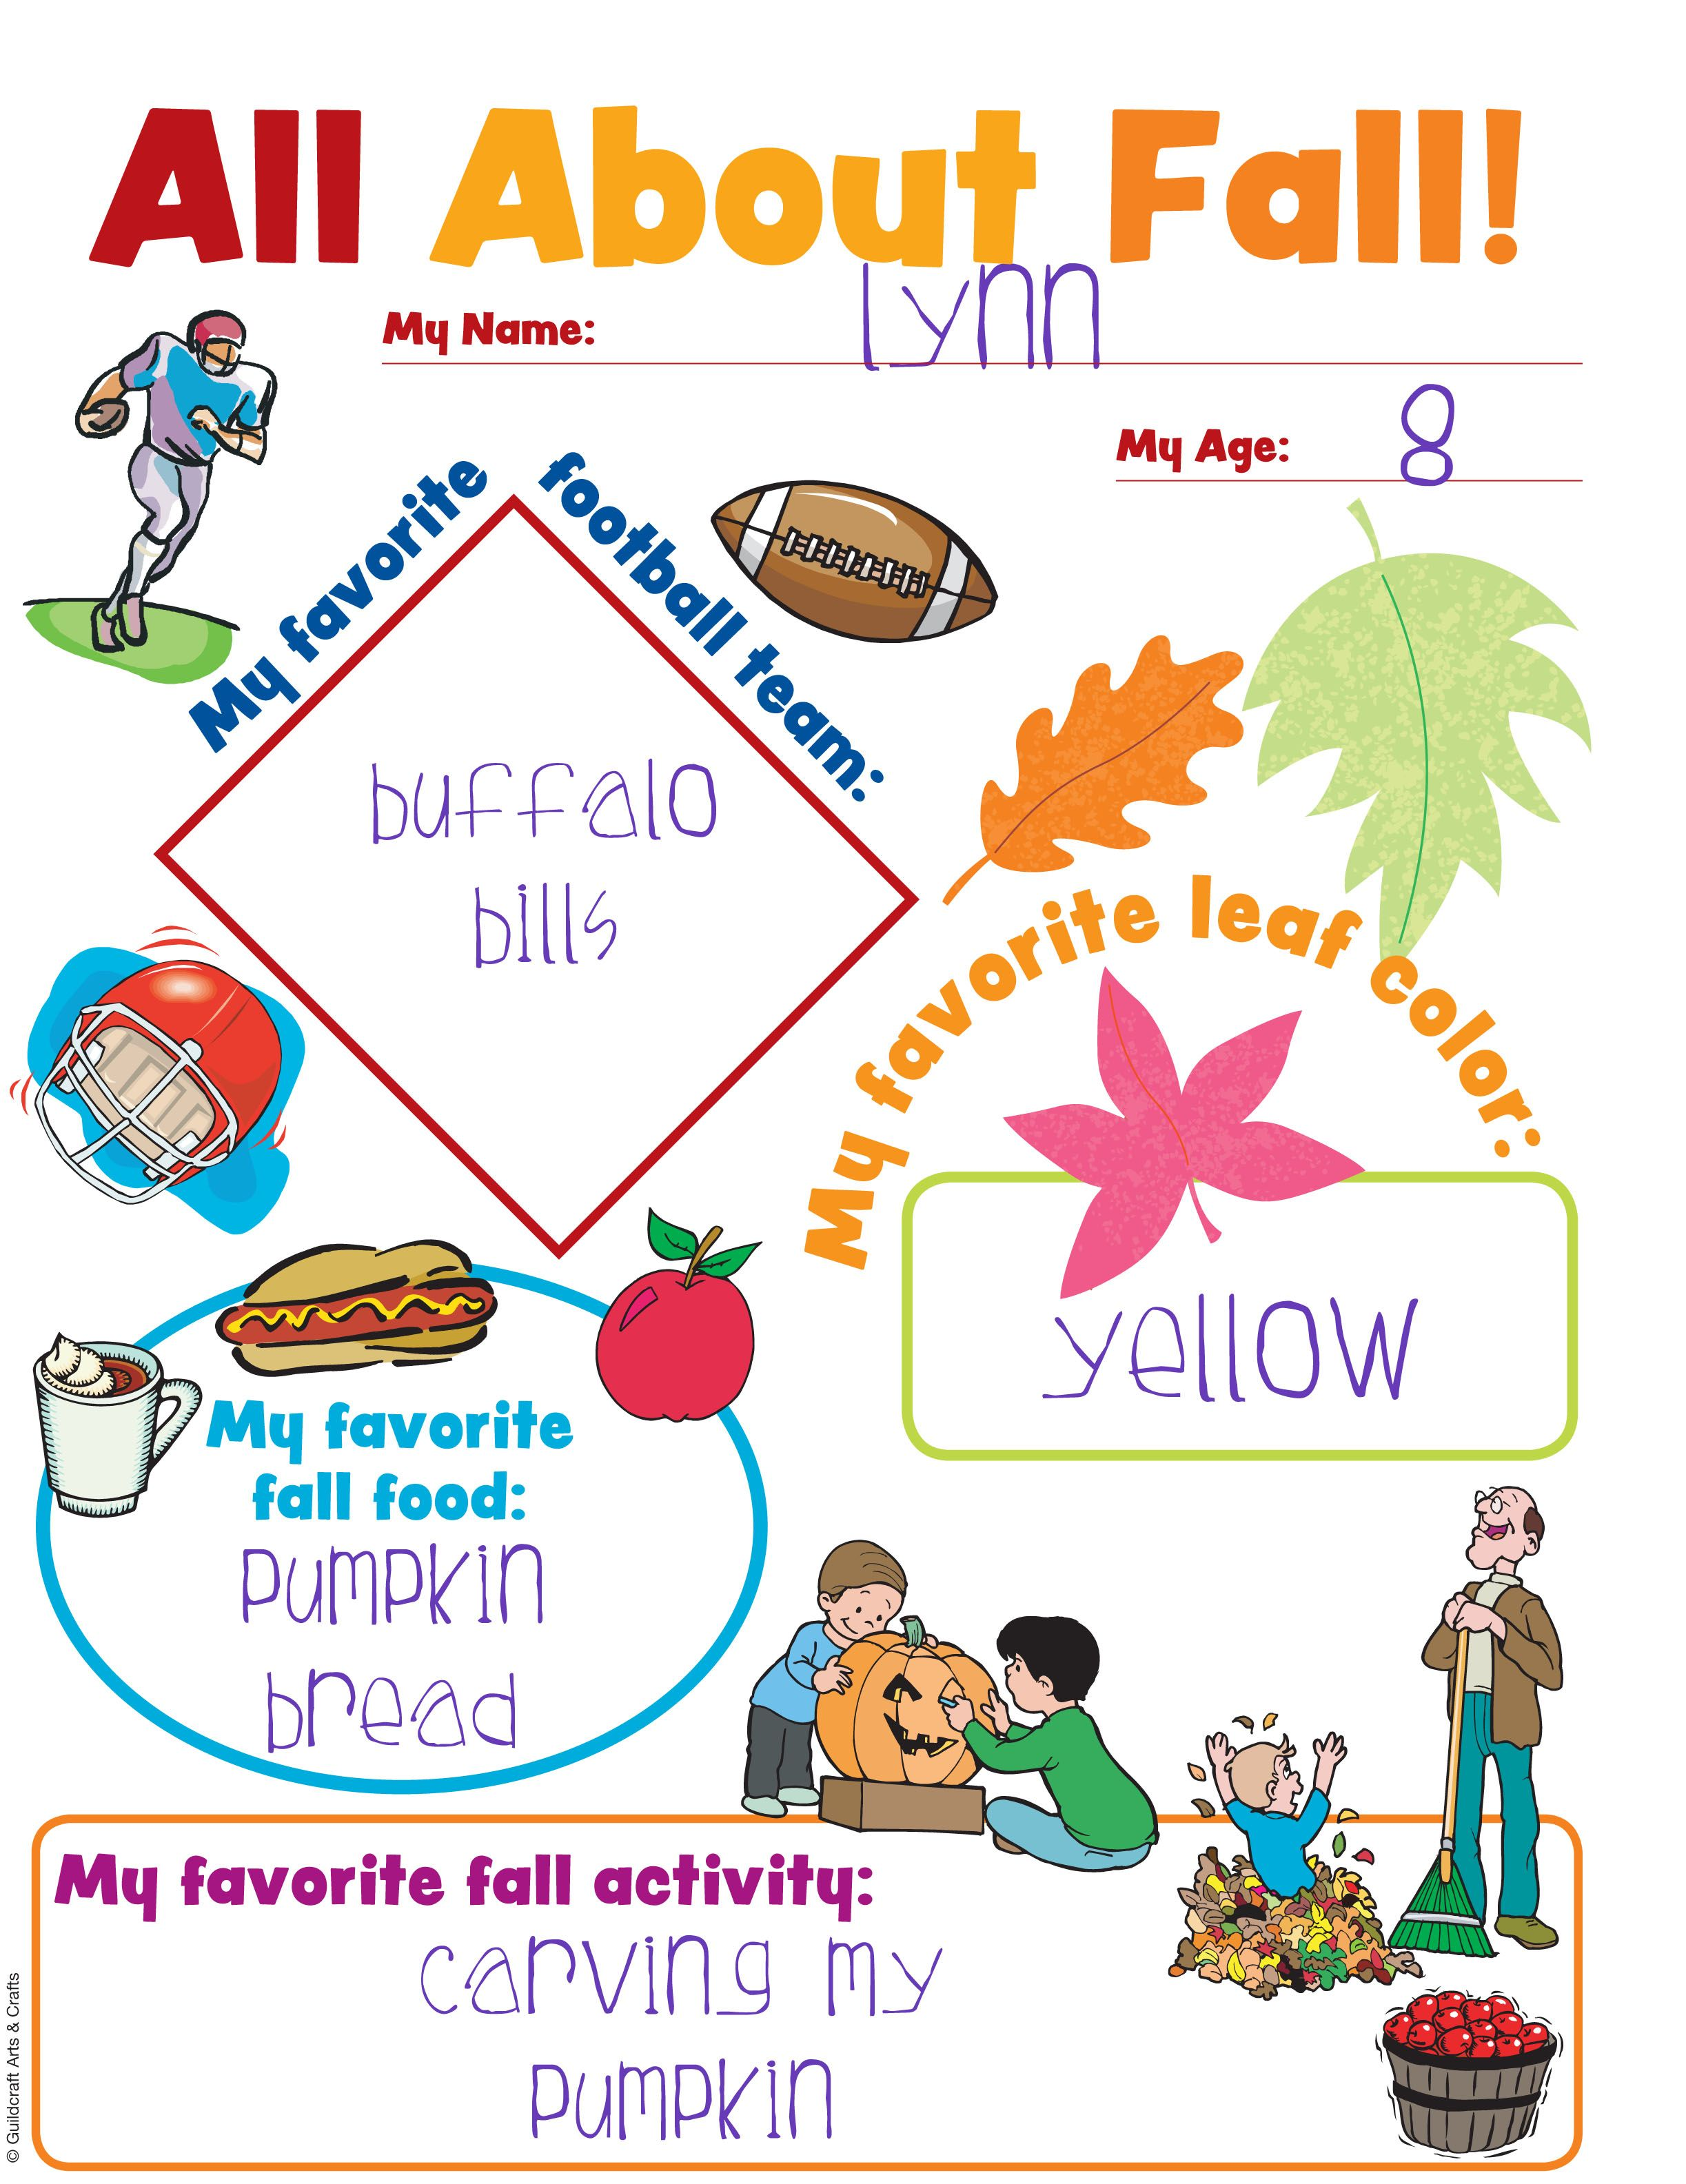 All About Fall Chart With Images